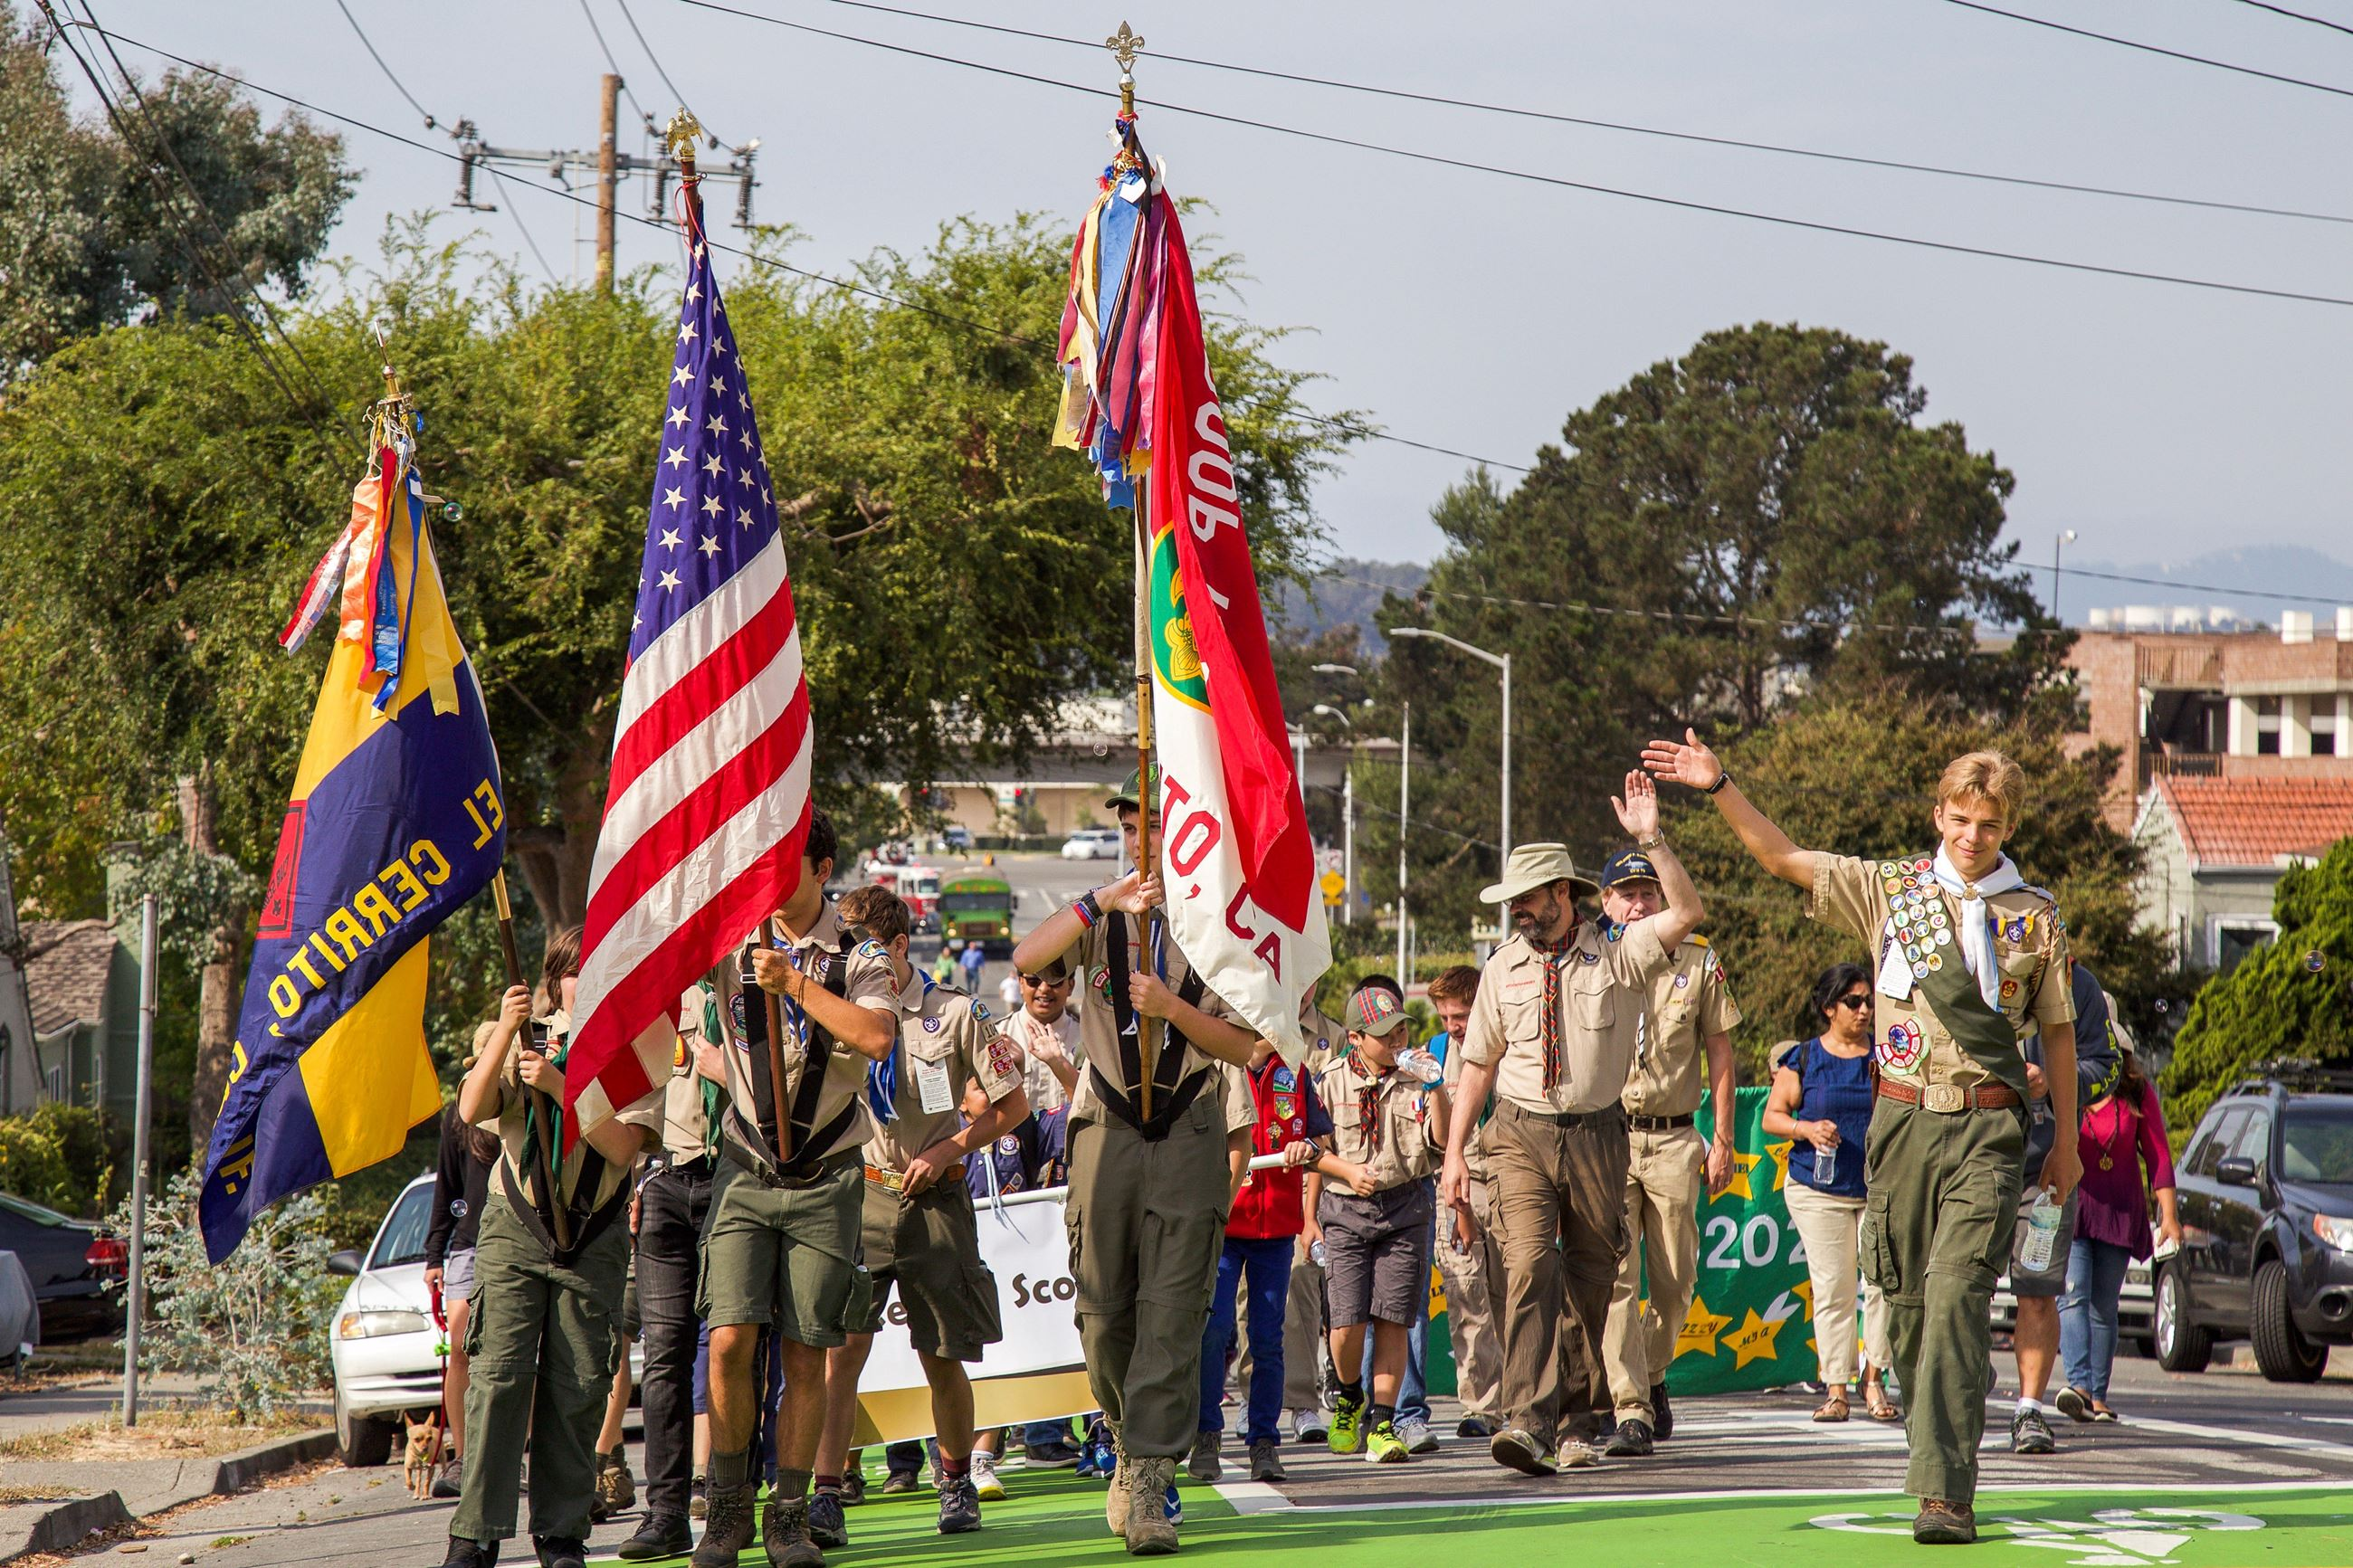 274 Scouts in Parade - Photo by Marin Stuart